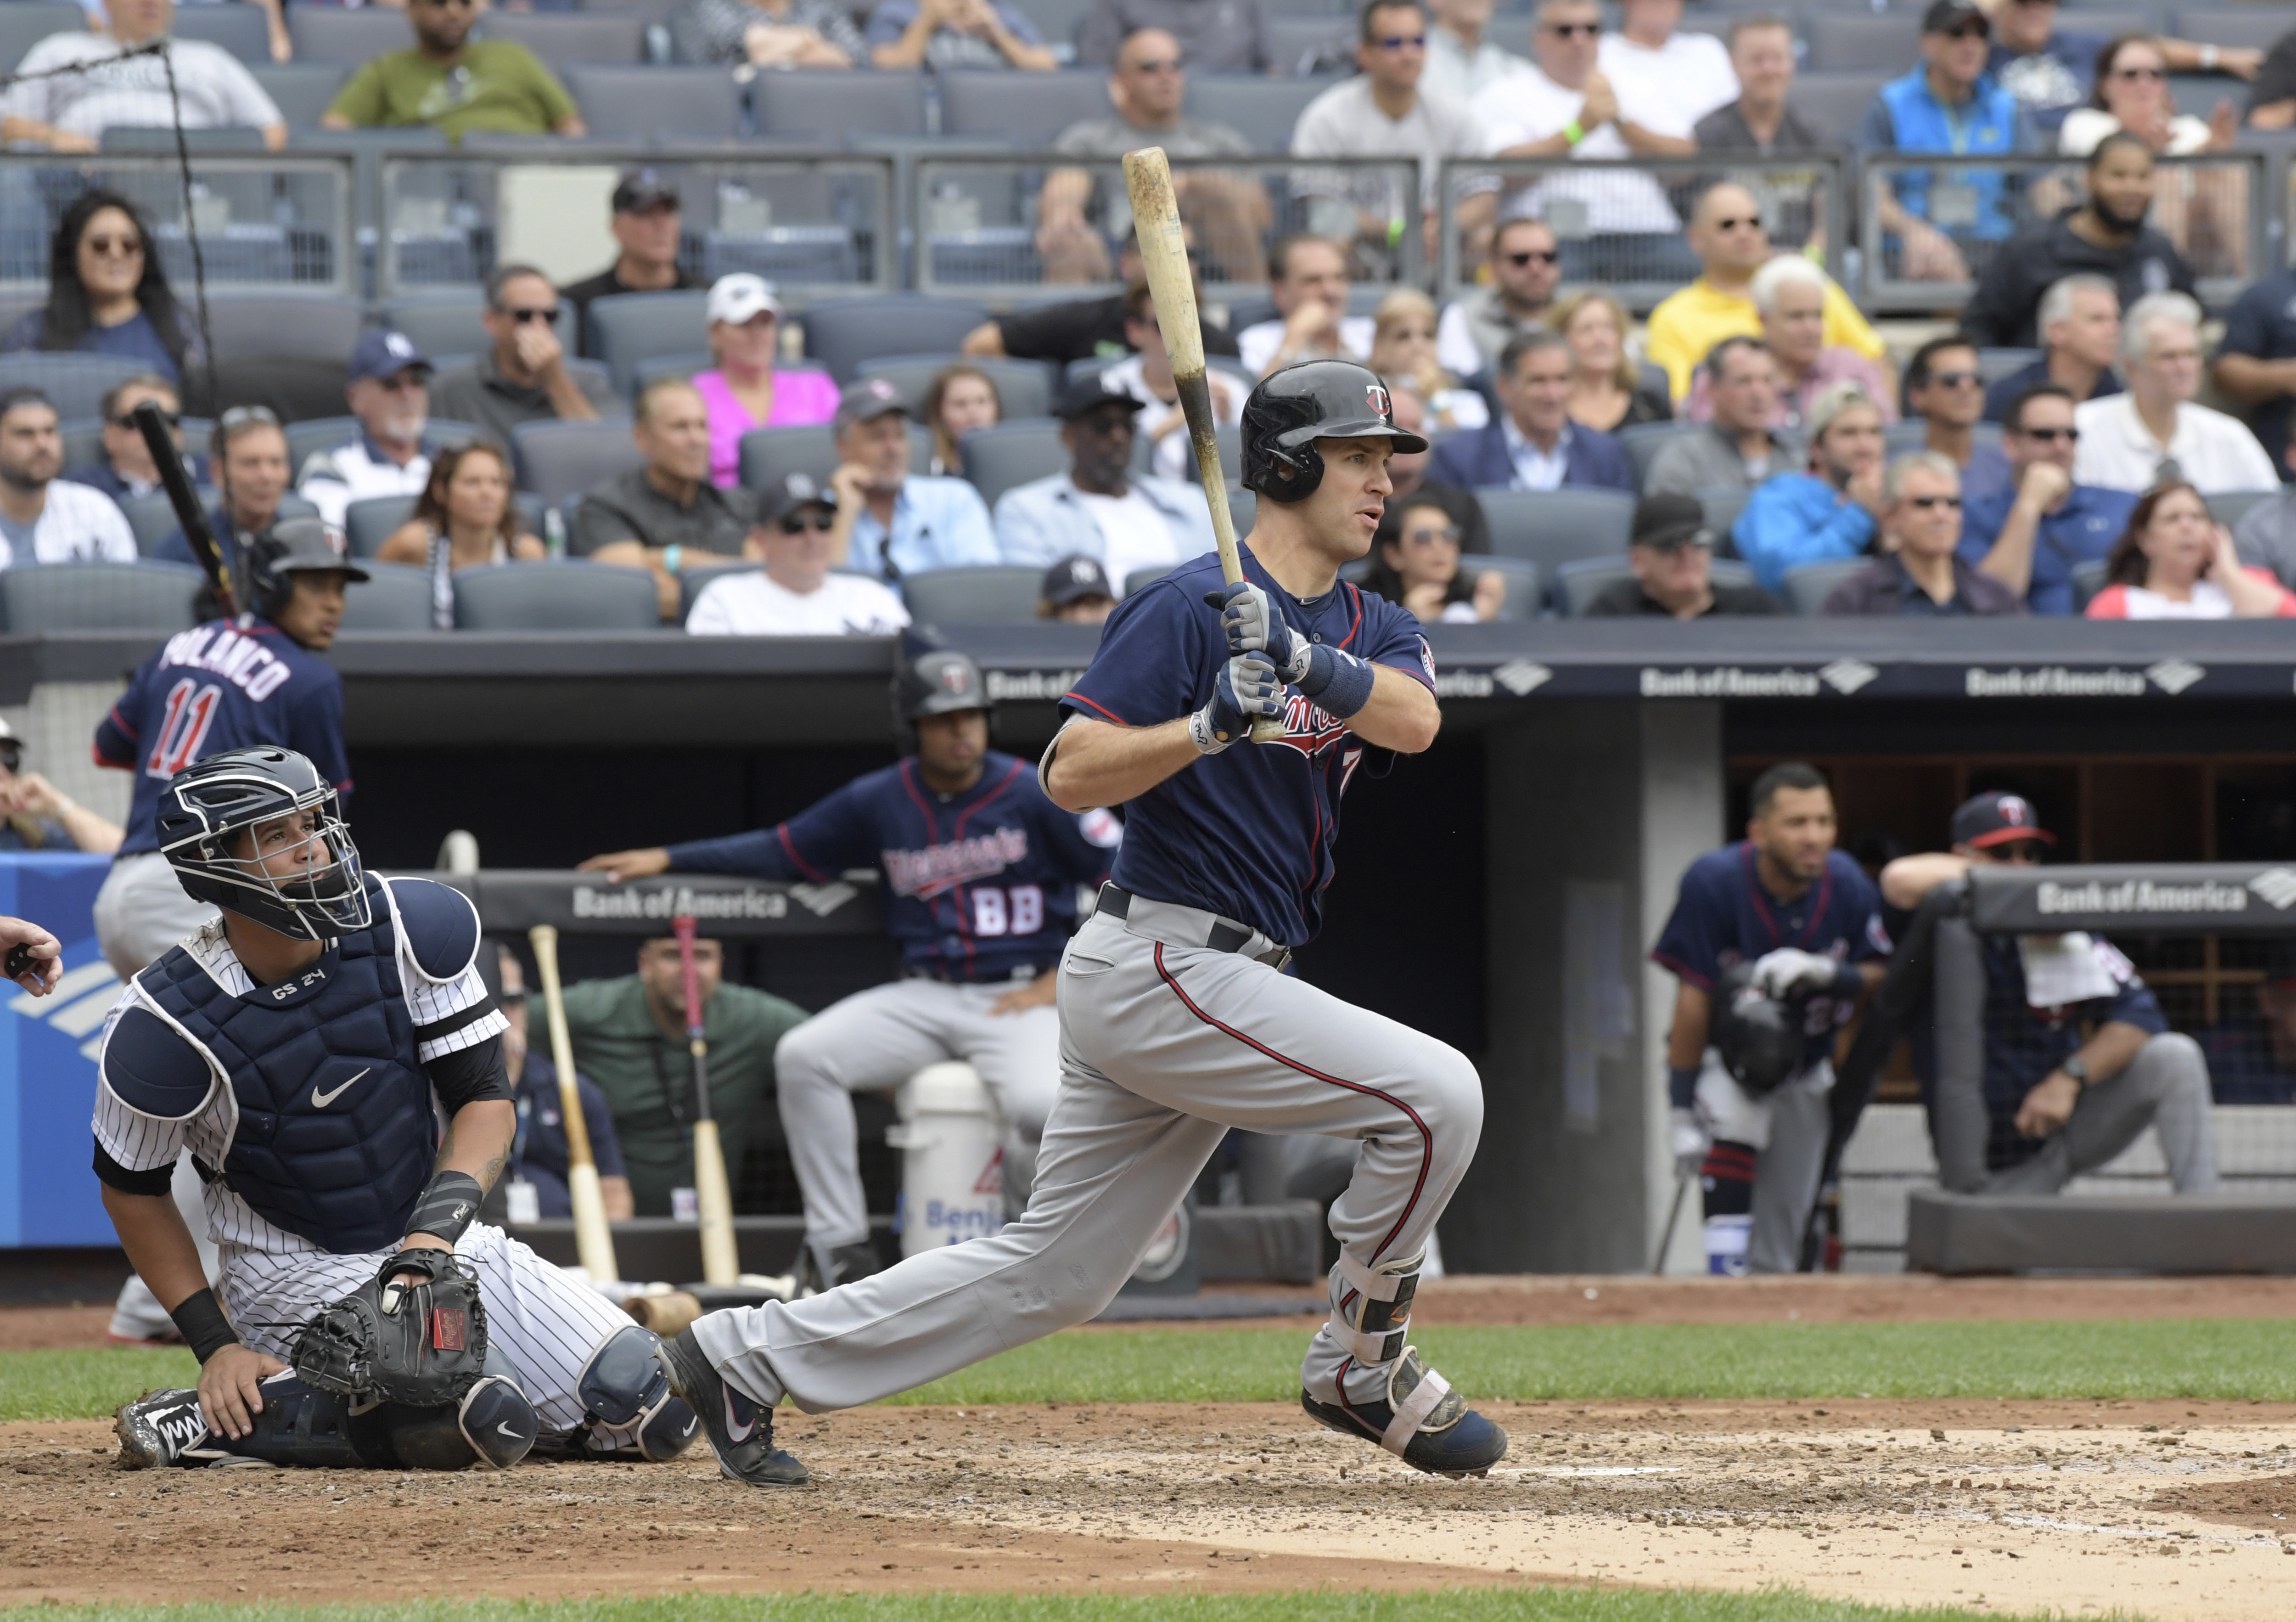 Joe Mauer continues to dominate the second half of the season